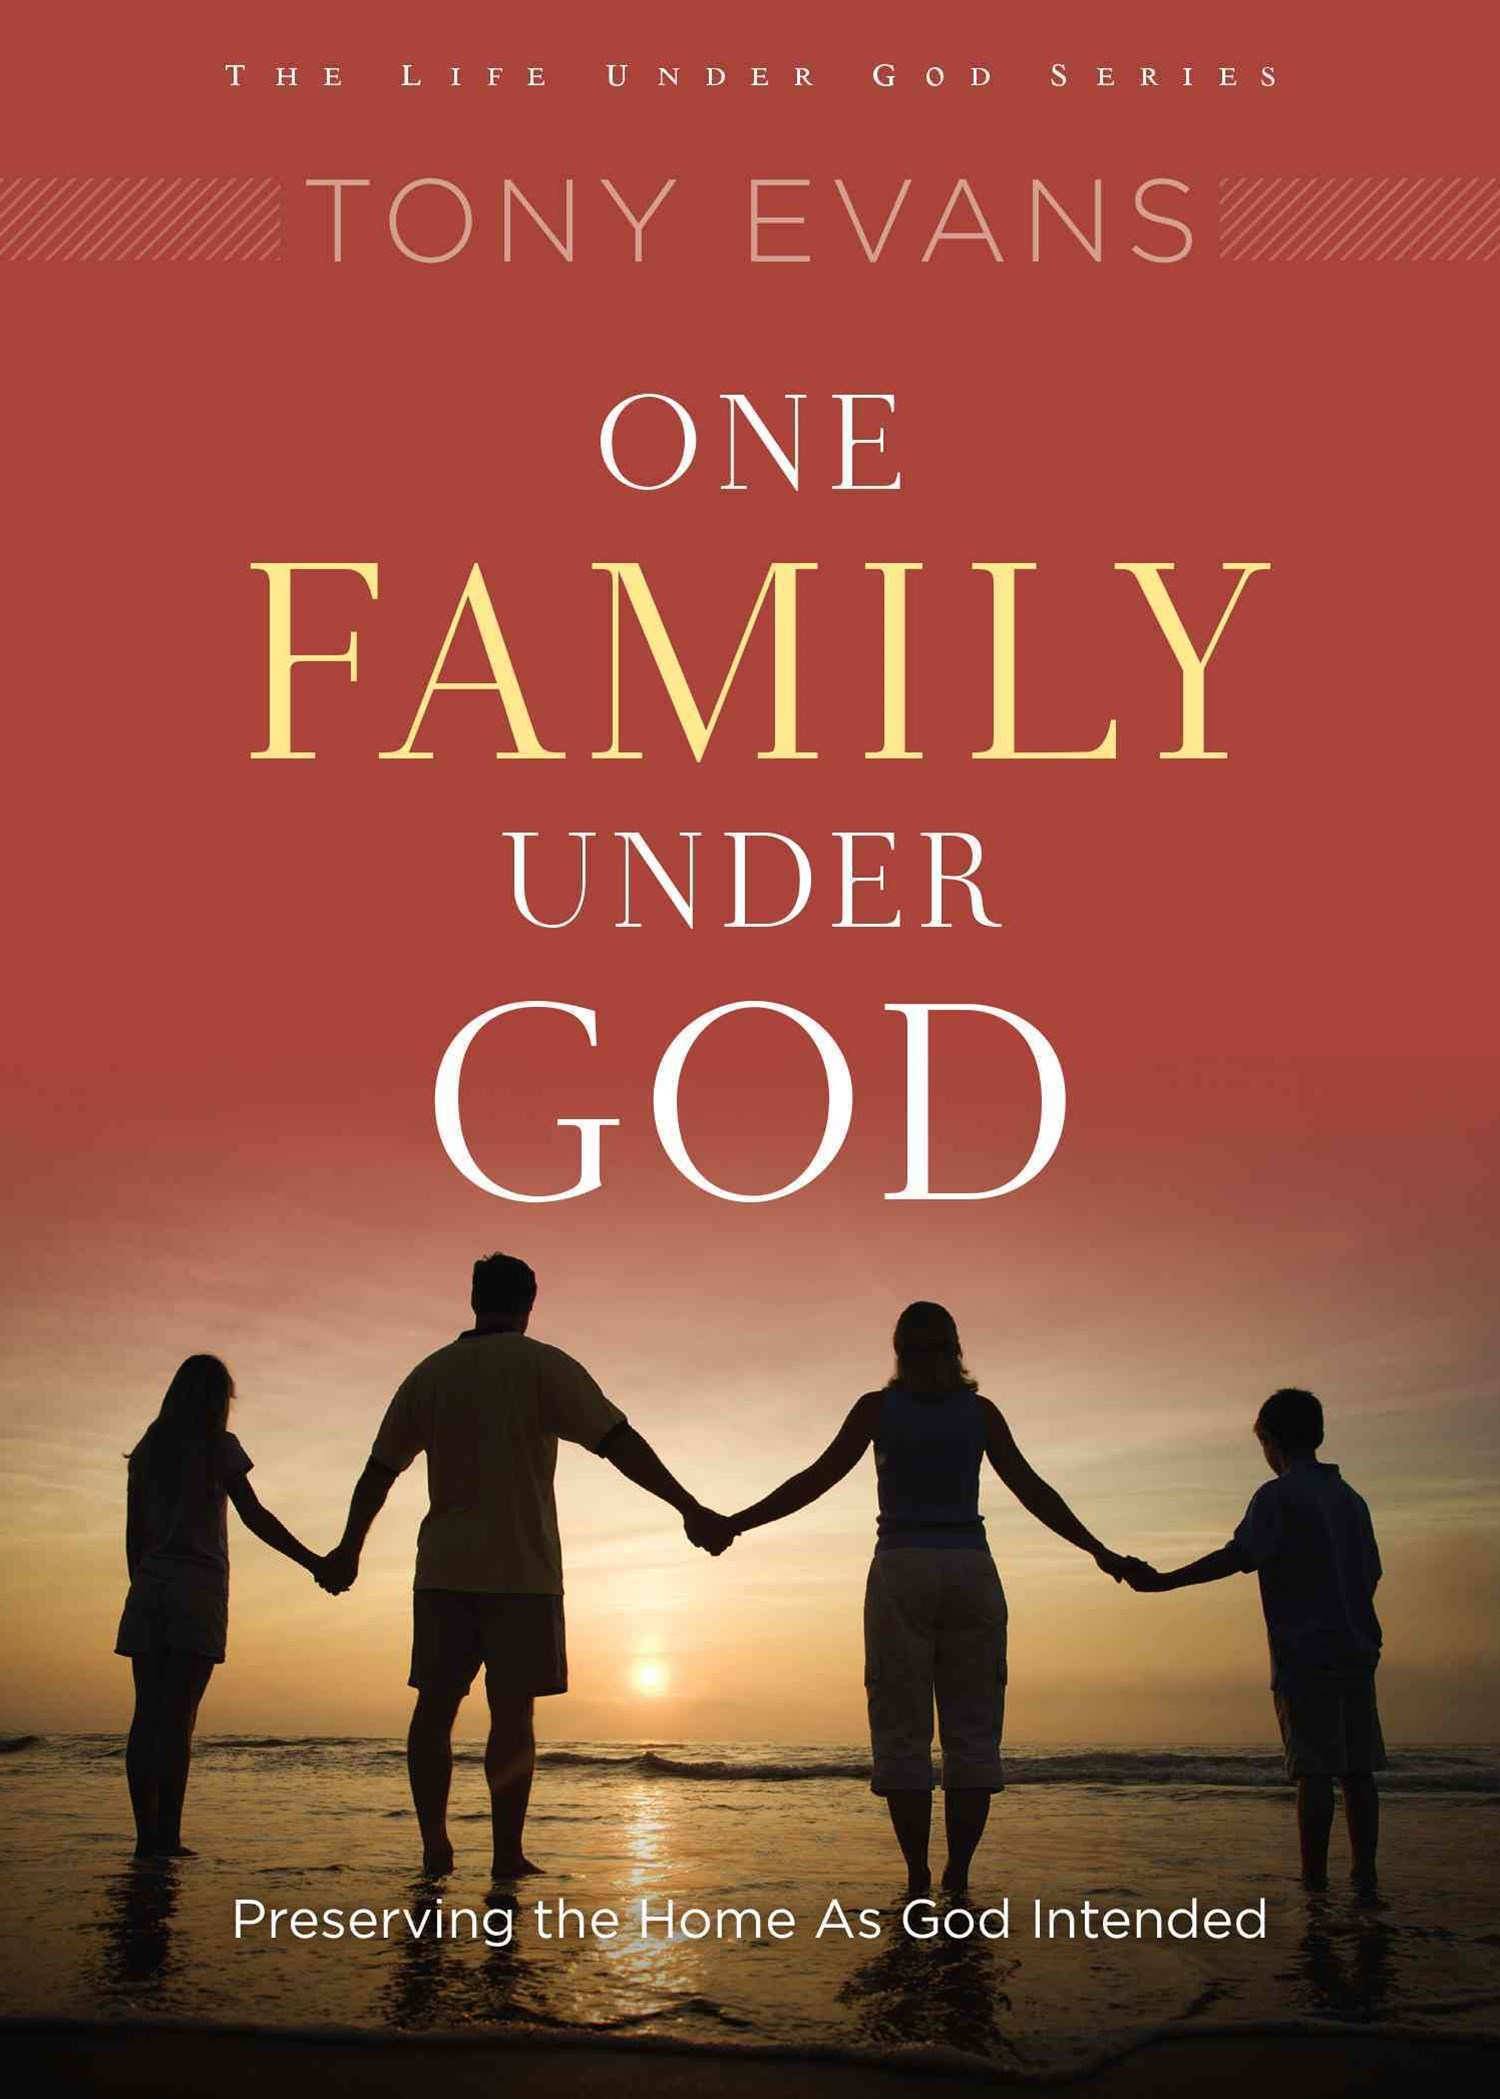 One Family under God